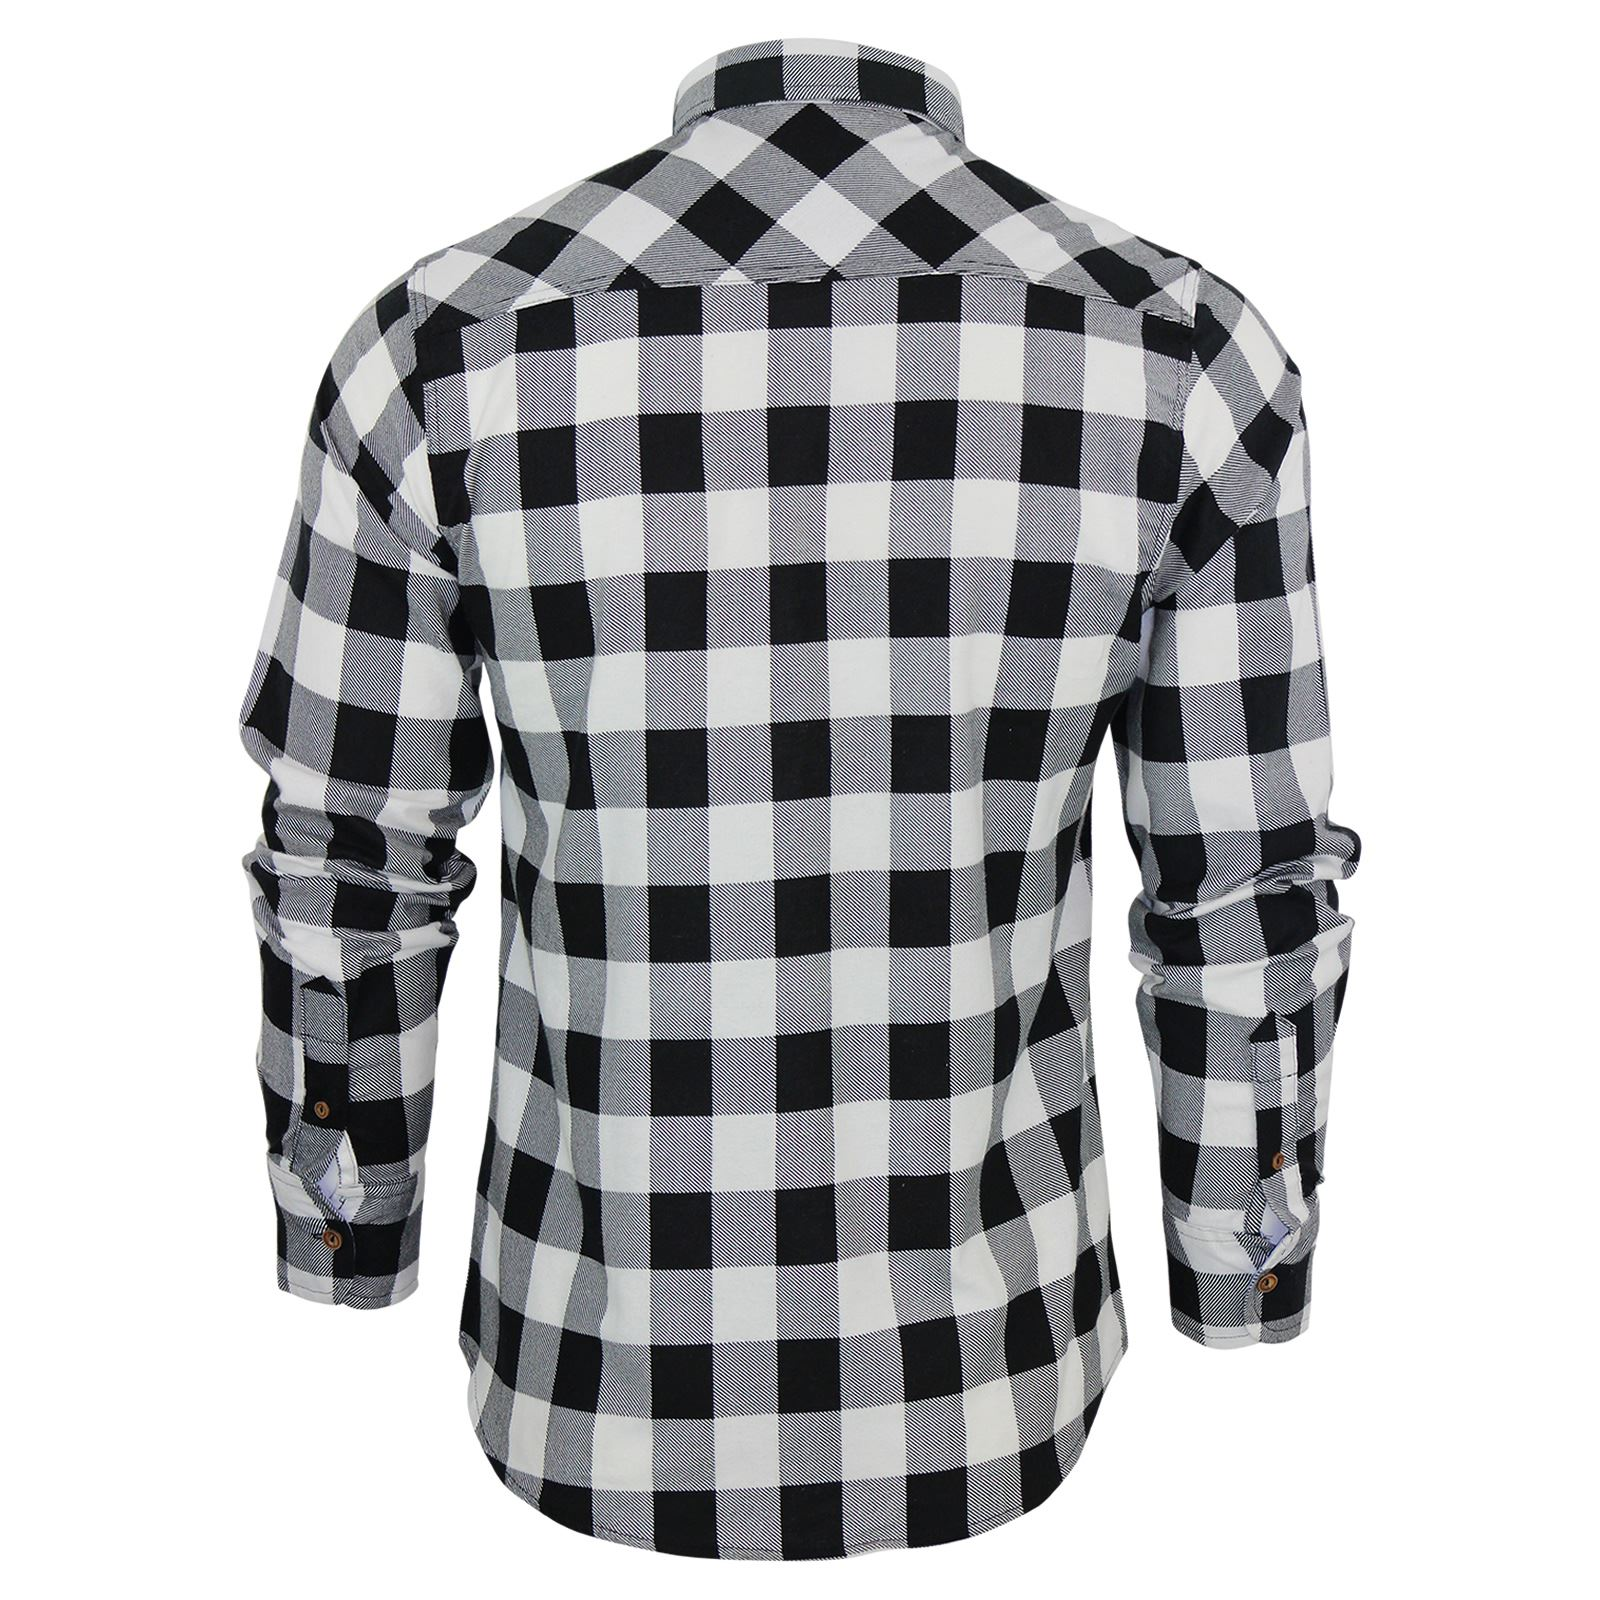 Mens-Check-Shirt-Brave-Soul-Flannel-Brushed-Cotton-Long-Sleeve-Casual-Top thumbnail 24